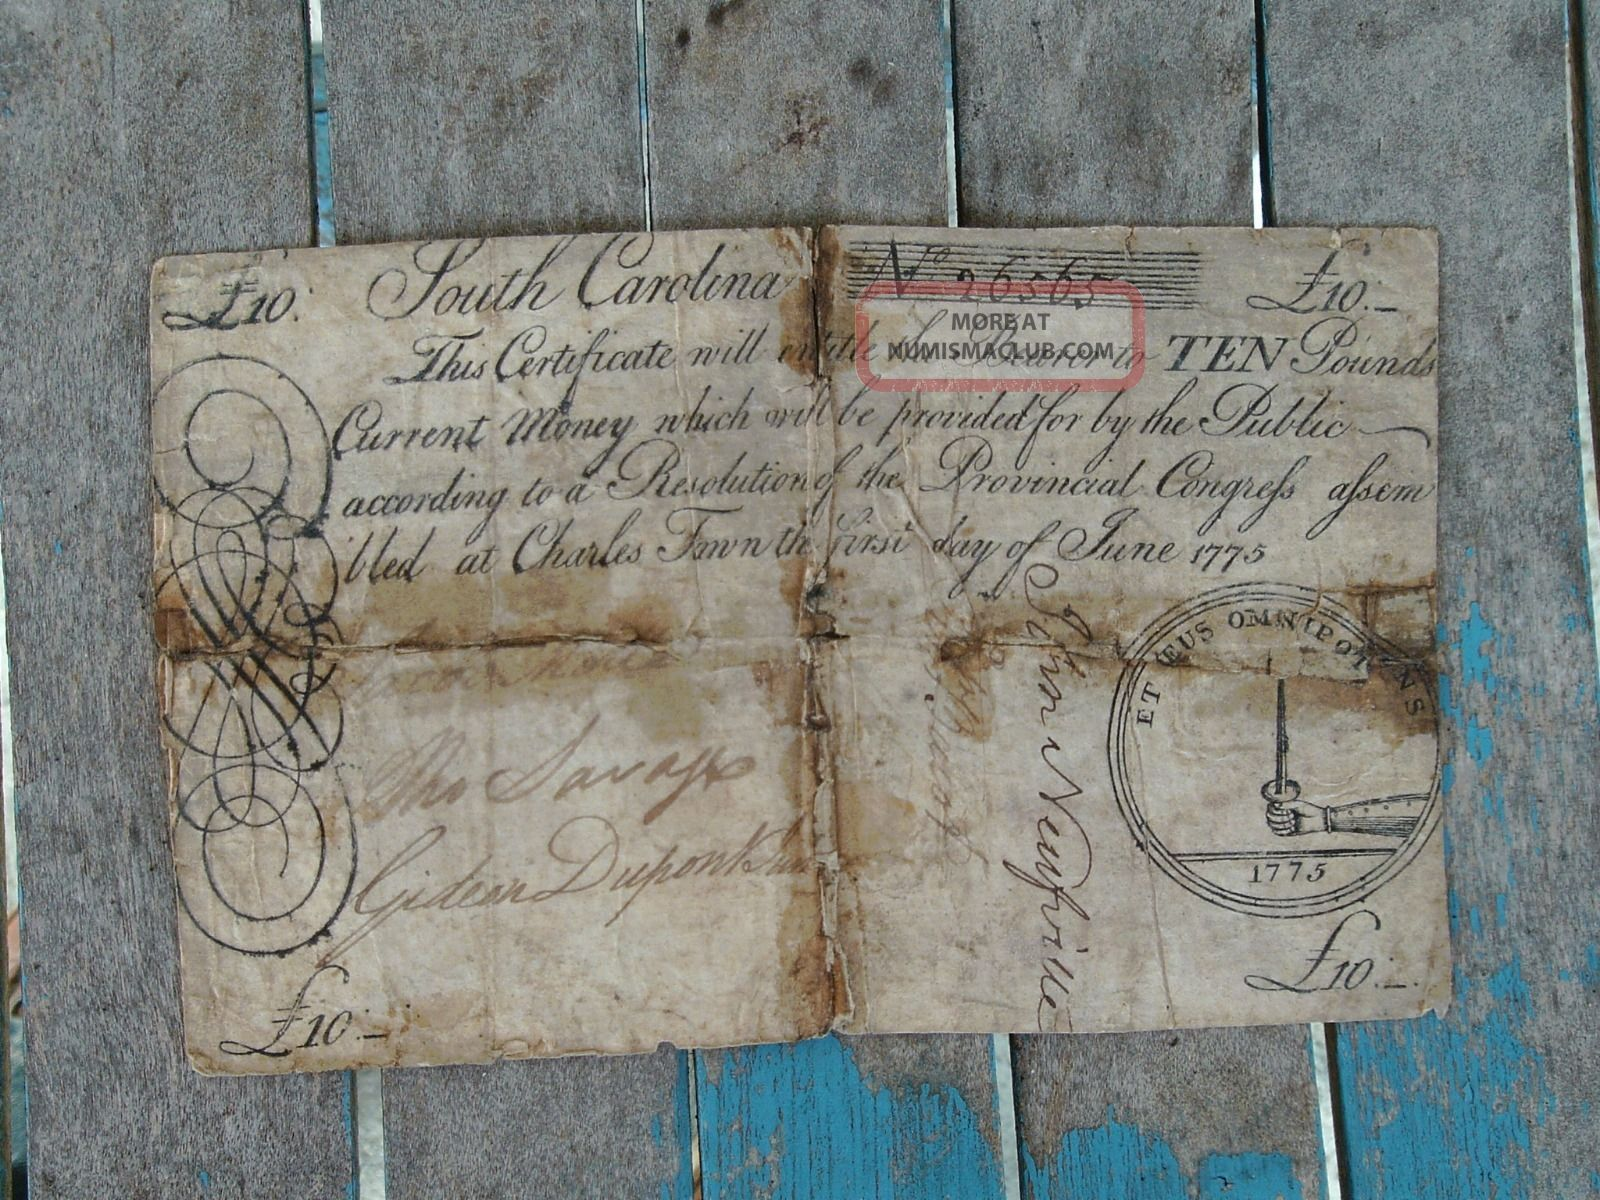 1775 South Carolina 10 Pounds Note Colonial Currency Obsolete Charles Town Bill Paper Money: US photo